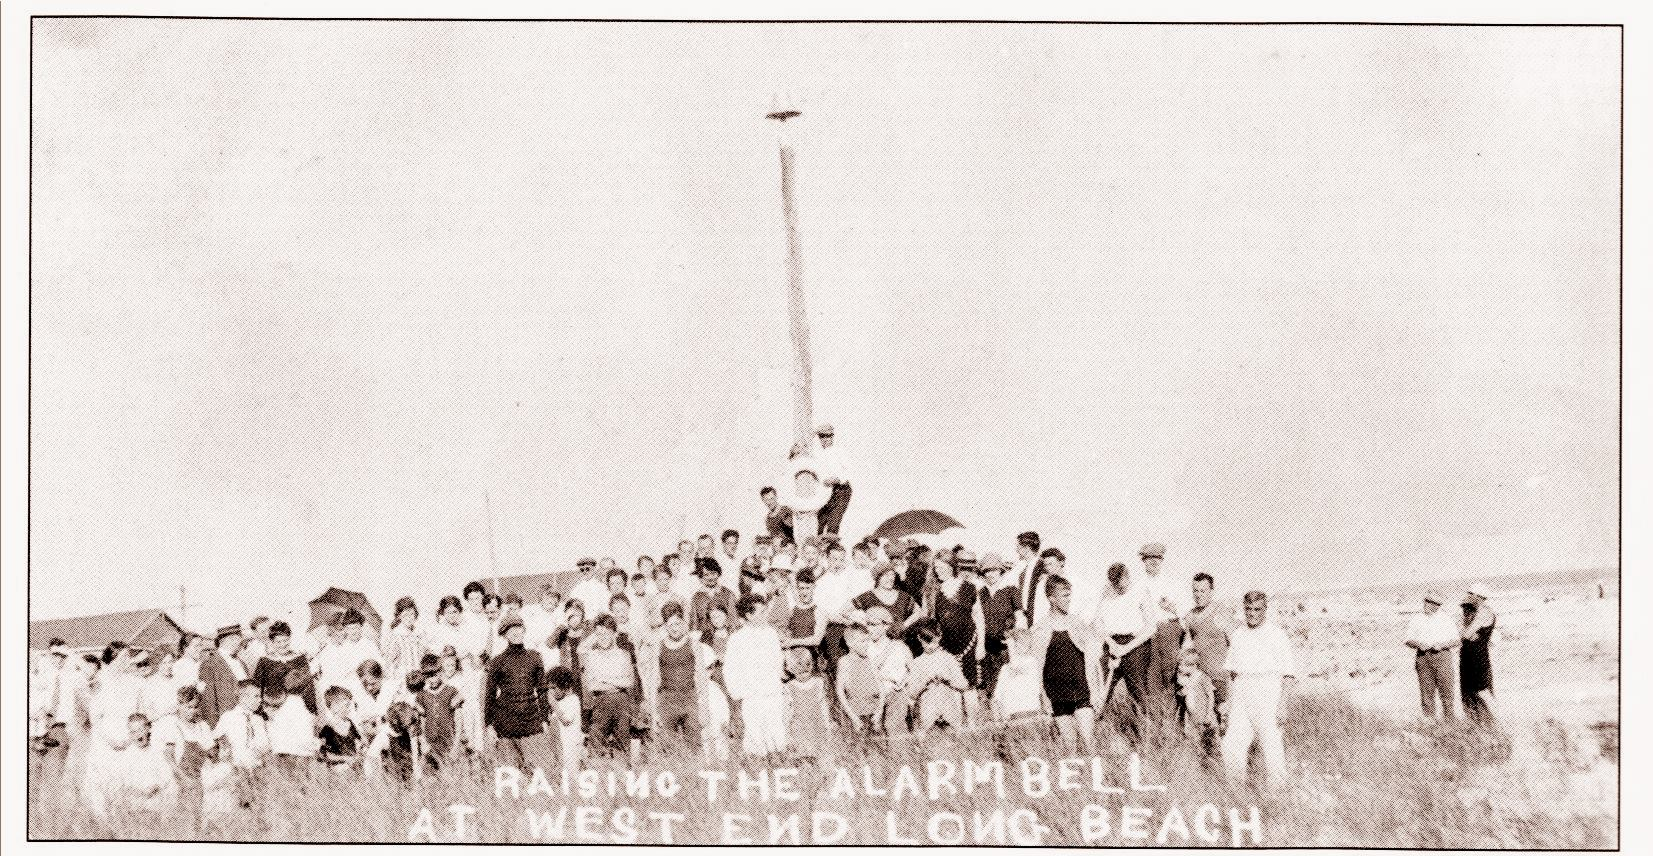 Fire West End Ringing Bell on Dunes 1920.jpg